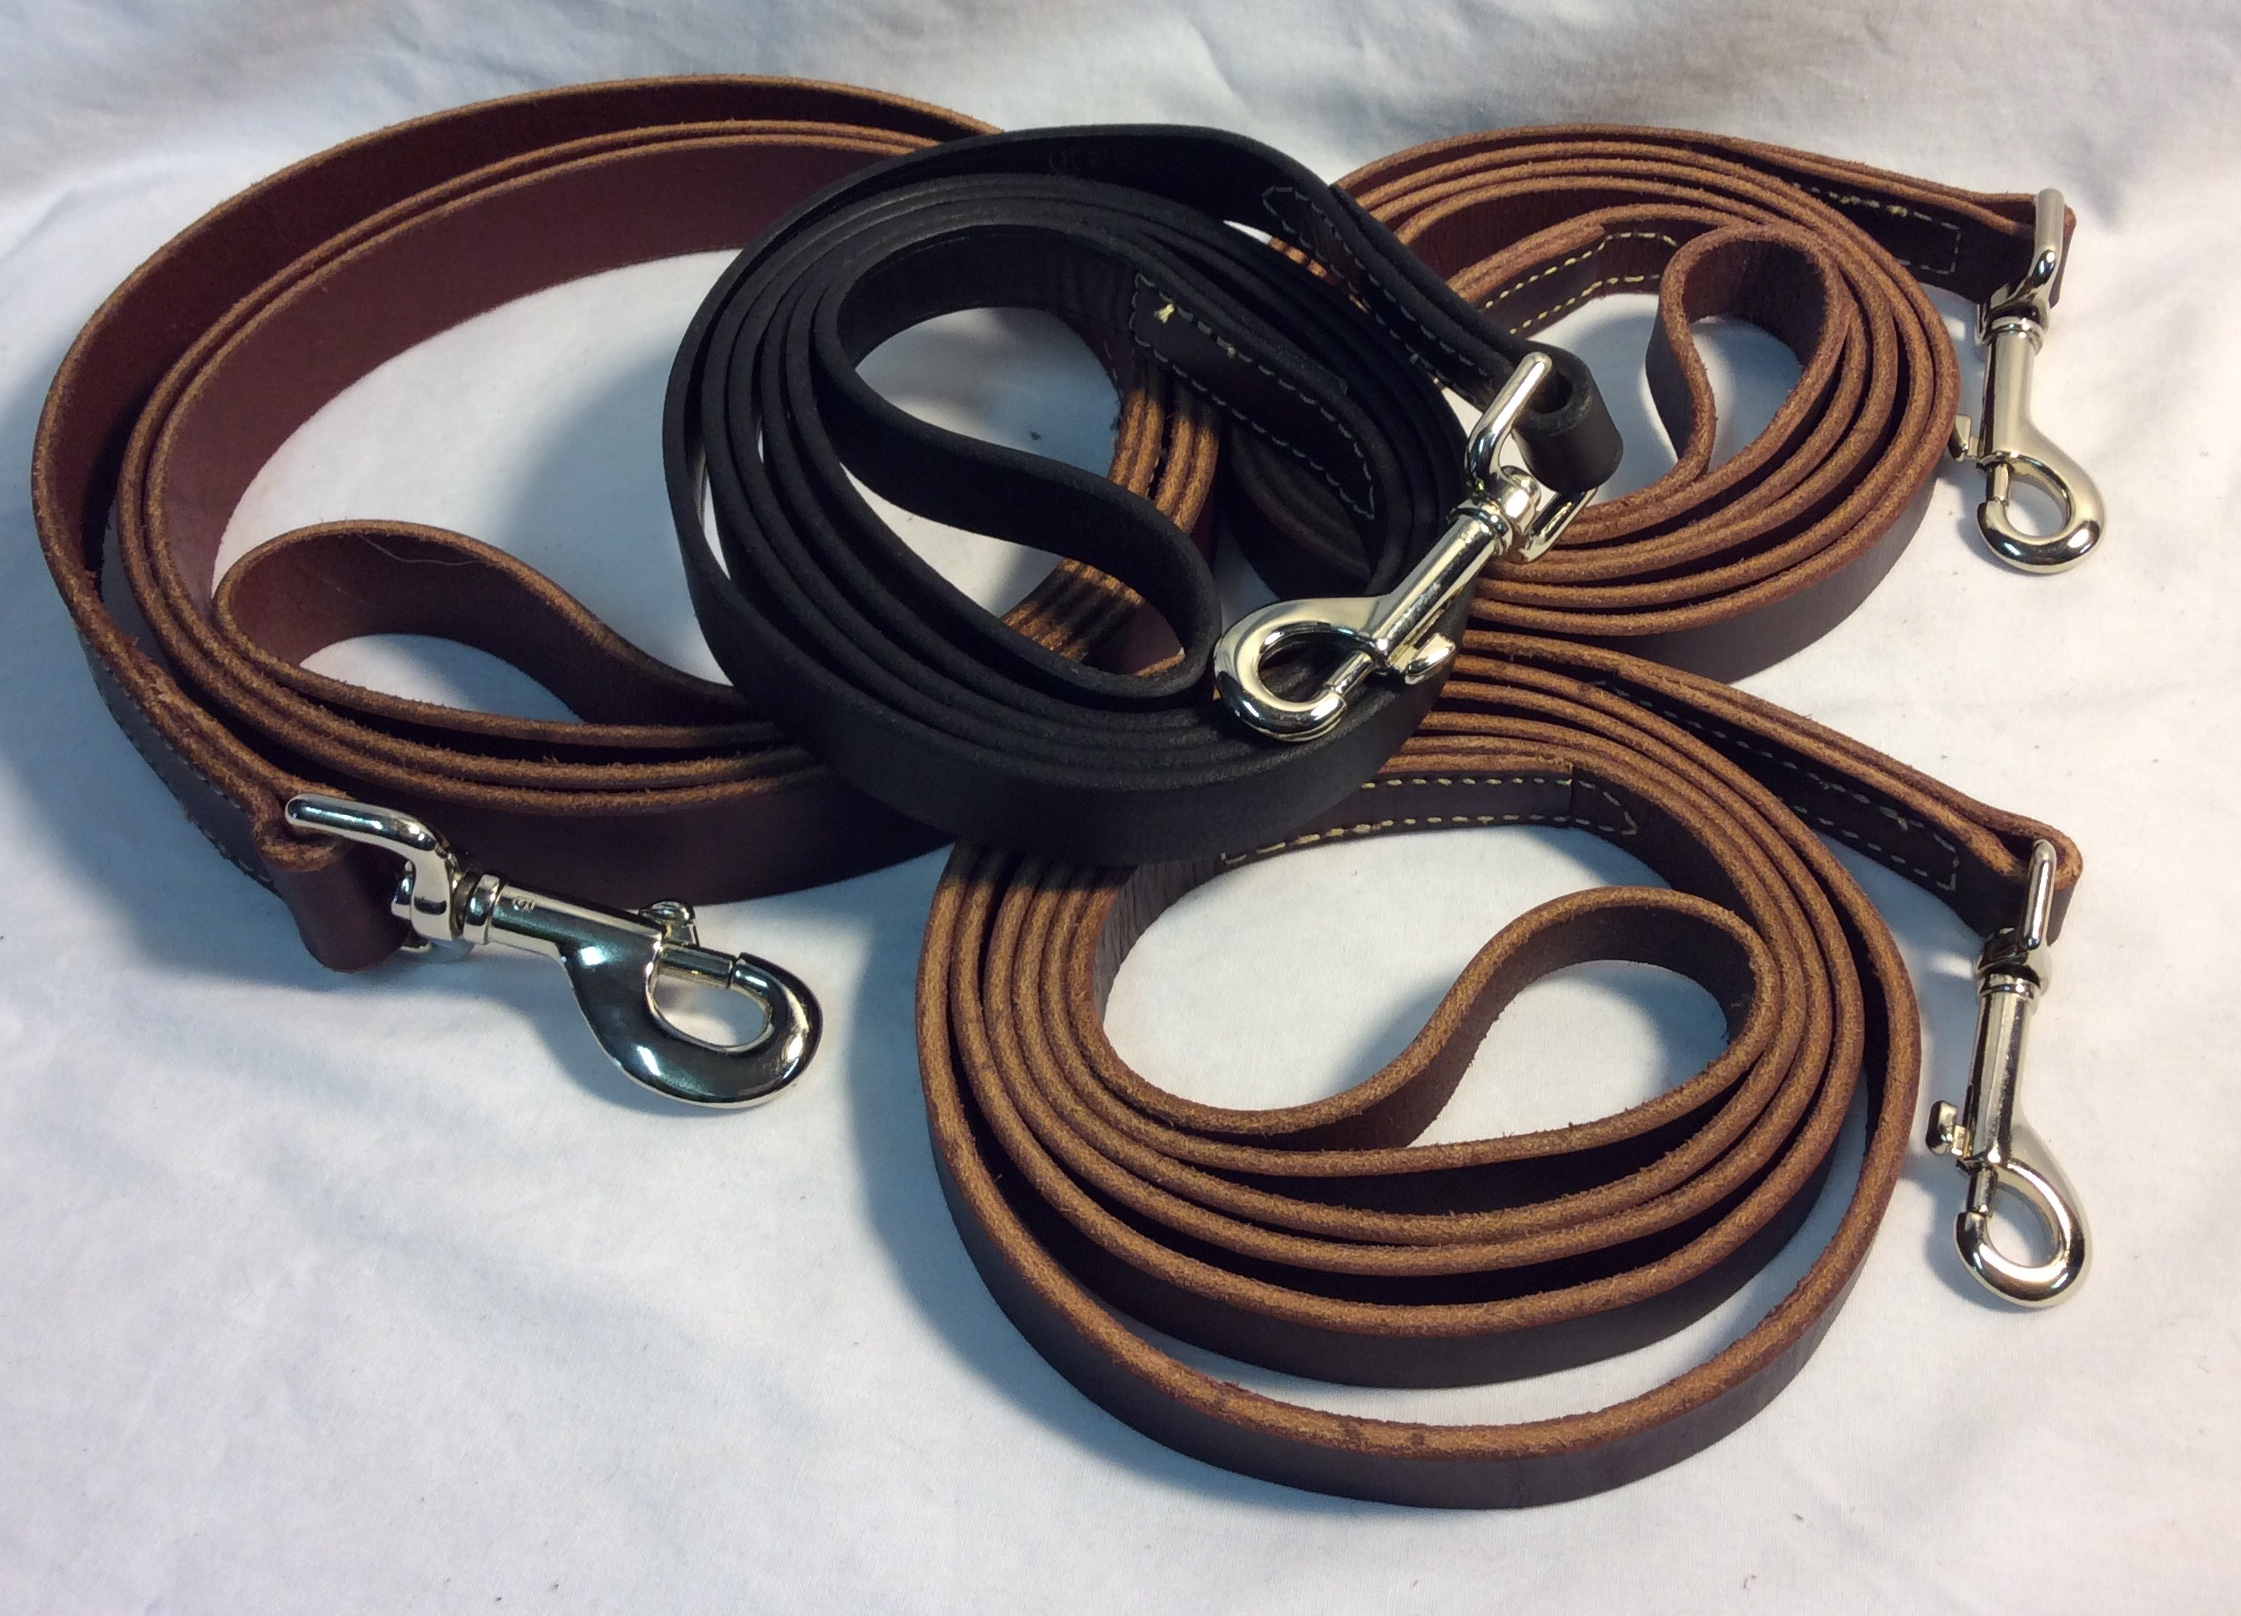 Leather leashes with different strap width. 3 brown and 1 black